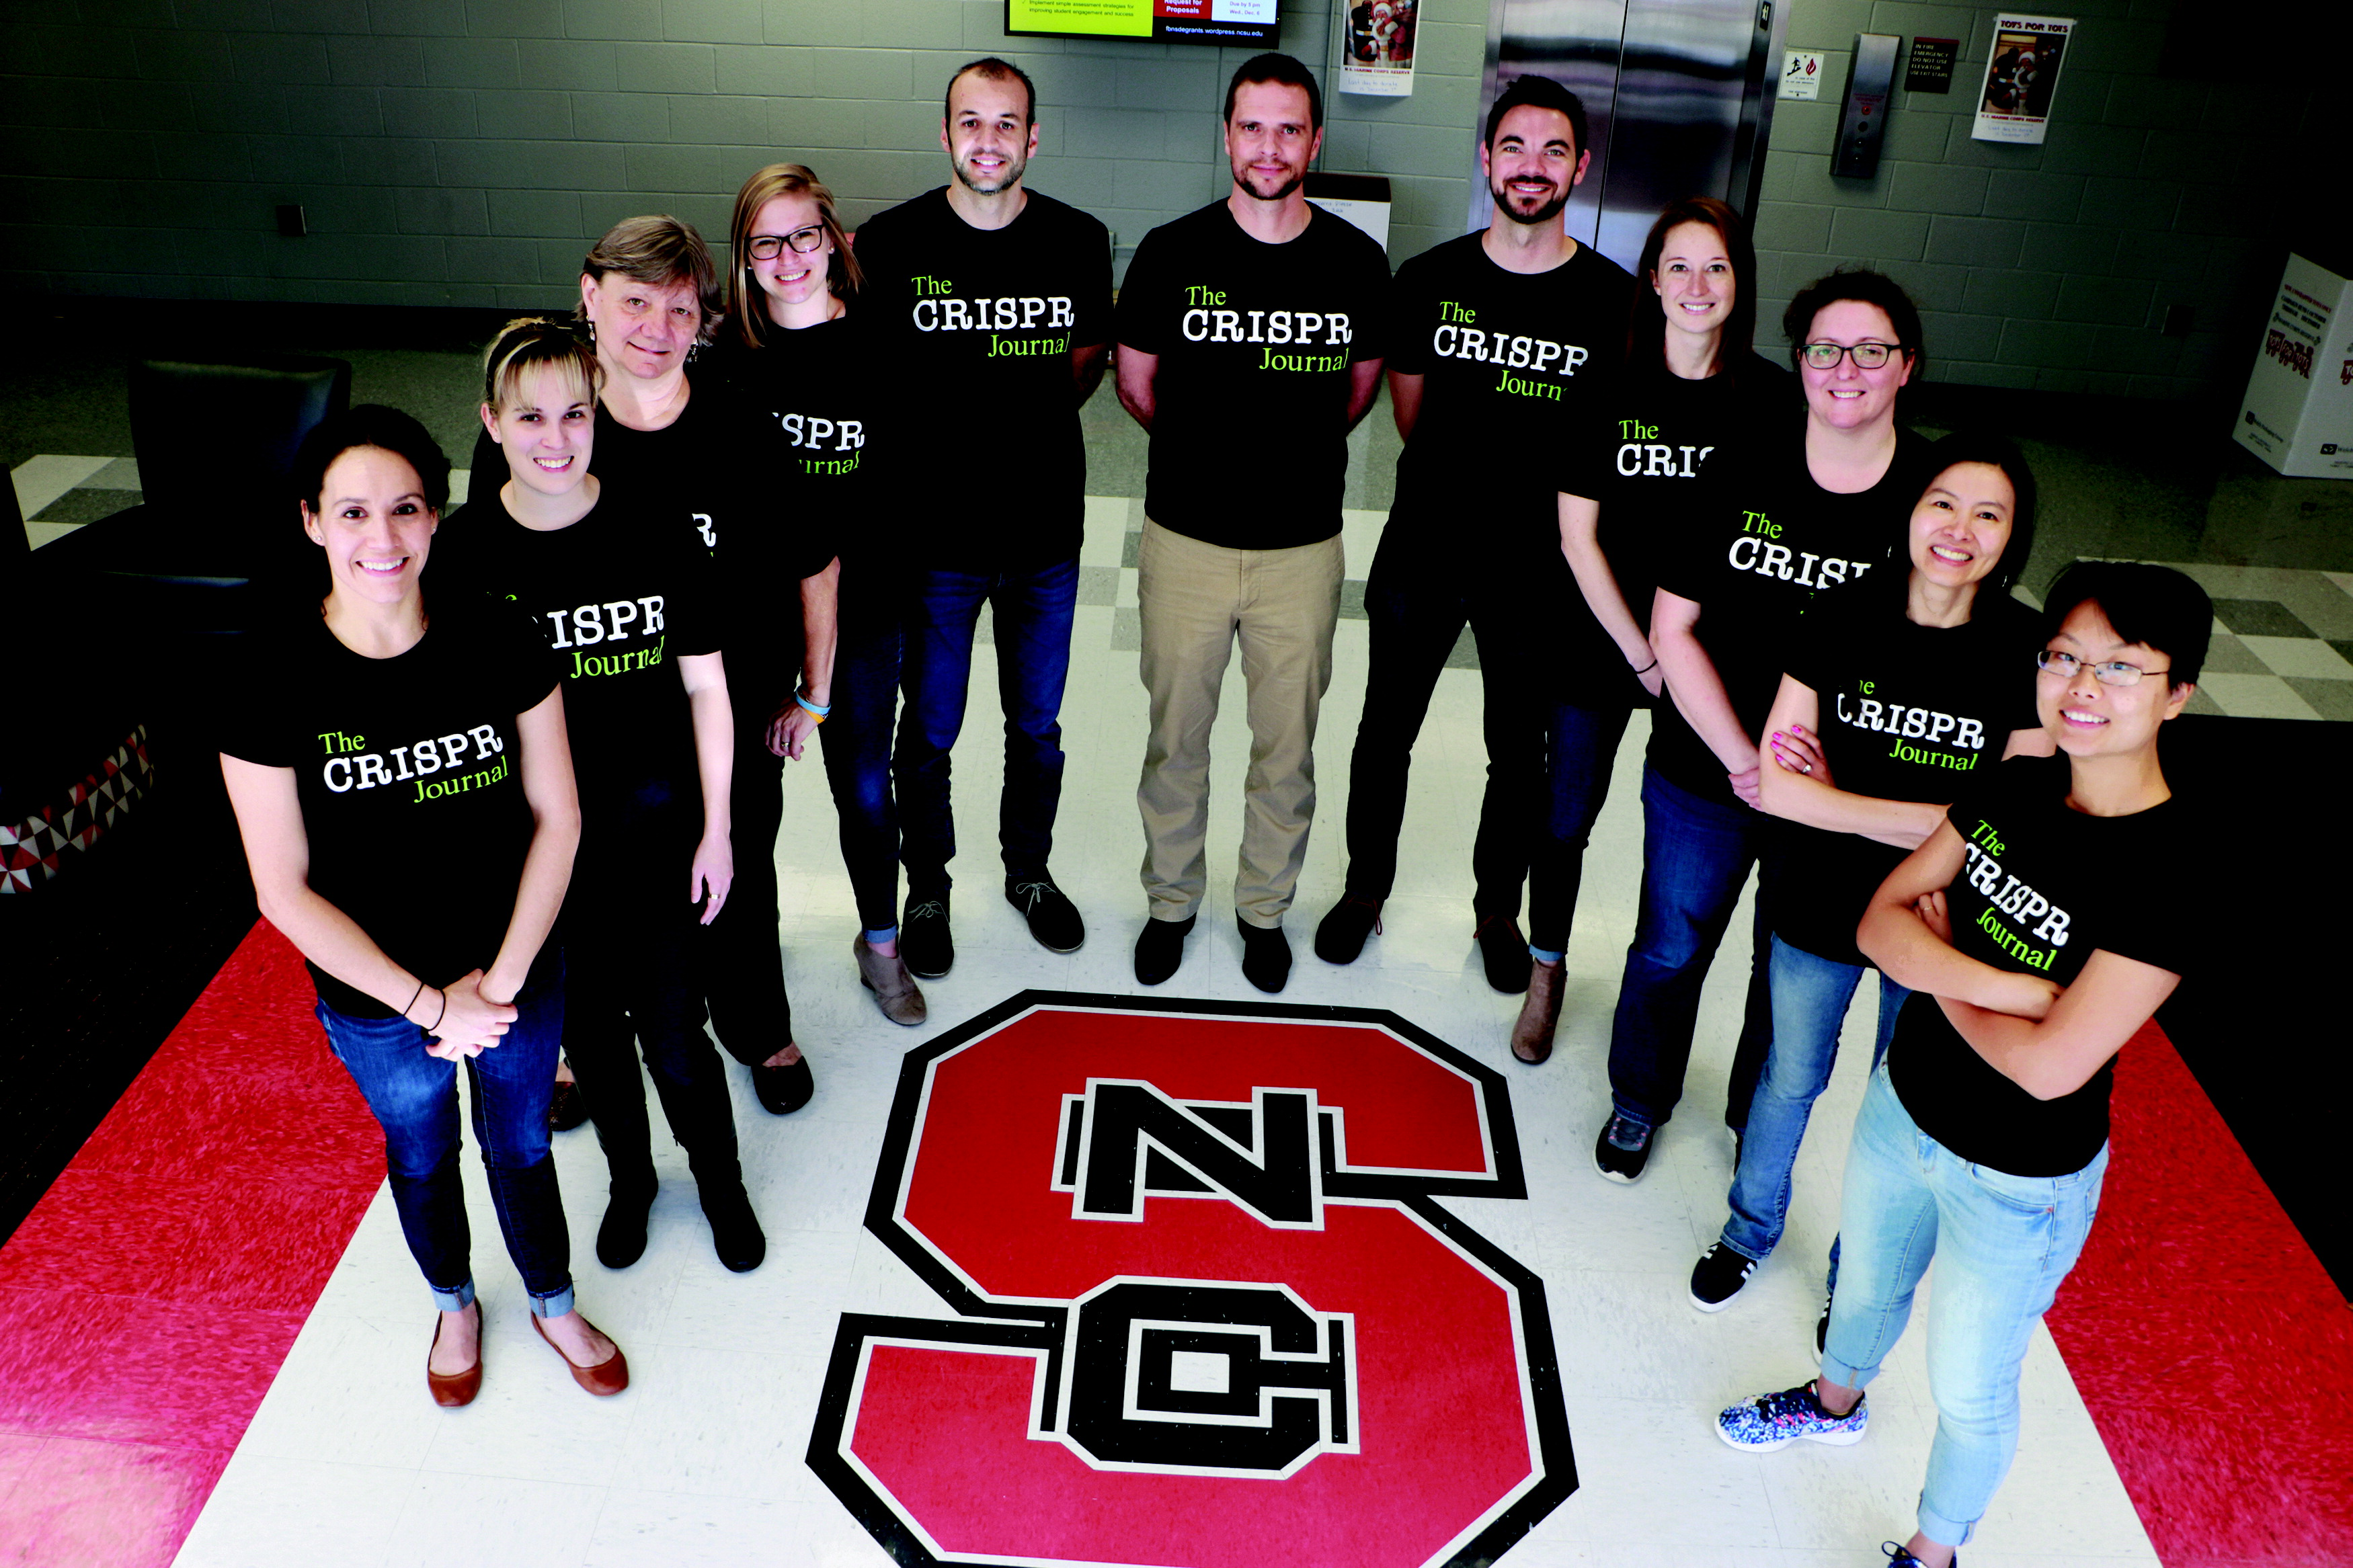 Rodolphe Barrangou lab at North Carolina State University.